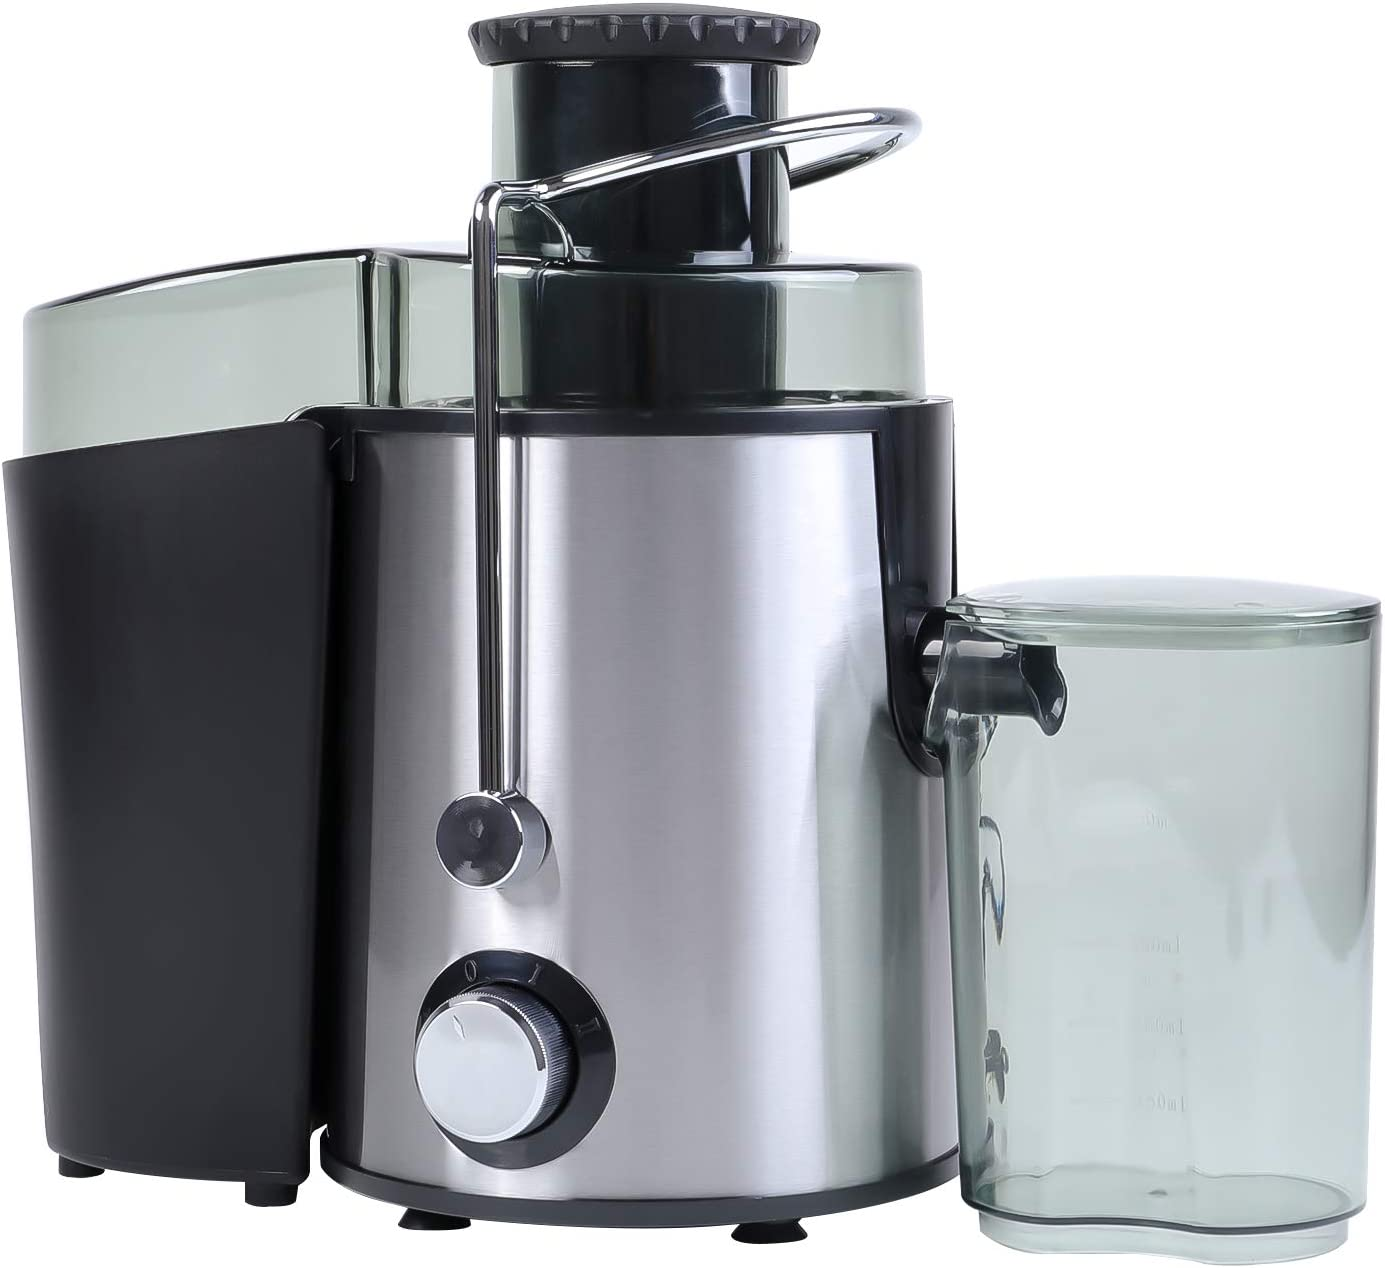 WOOW DEPOT Juicer Machines Large Feed Chute Electric Juice Extractor Stainless Steel Centrifugal Juicer with Reverse Function 2 Speed Large Capacity Easy to Clean for Fruits and Vegetables, Silver